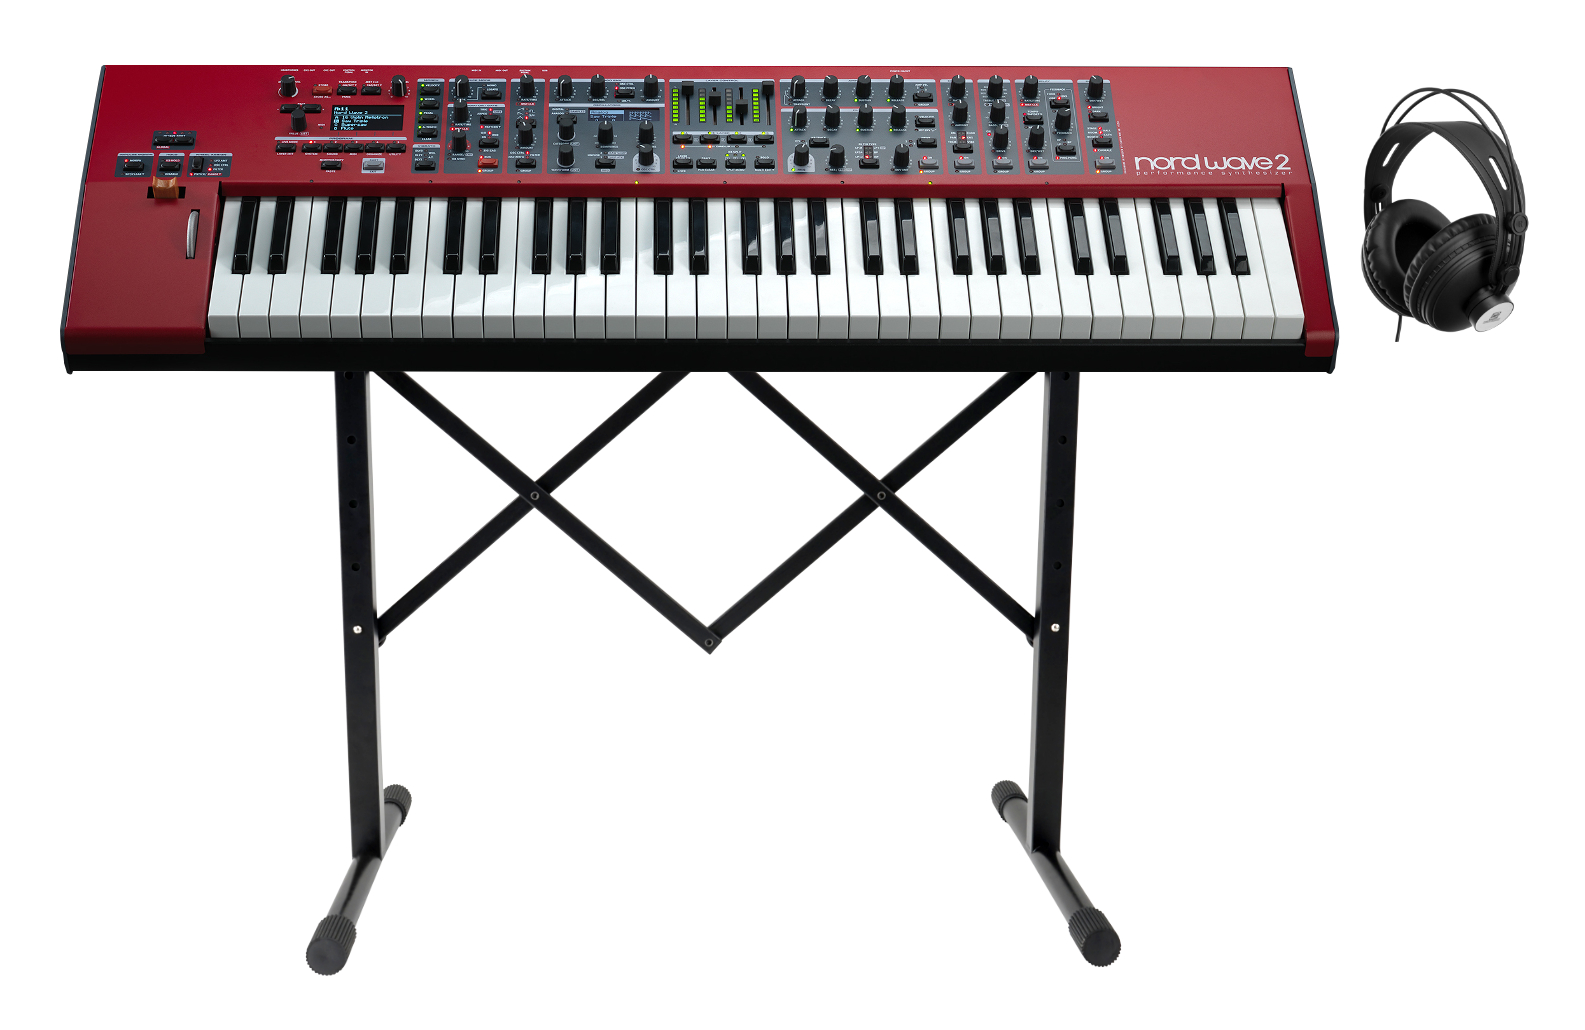 Synthesizer - Clavia Nord Wave 2 Performance Synthesizer Set - Onlineshop Musikhaus Kirstein